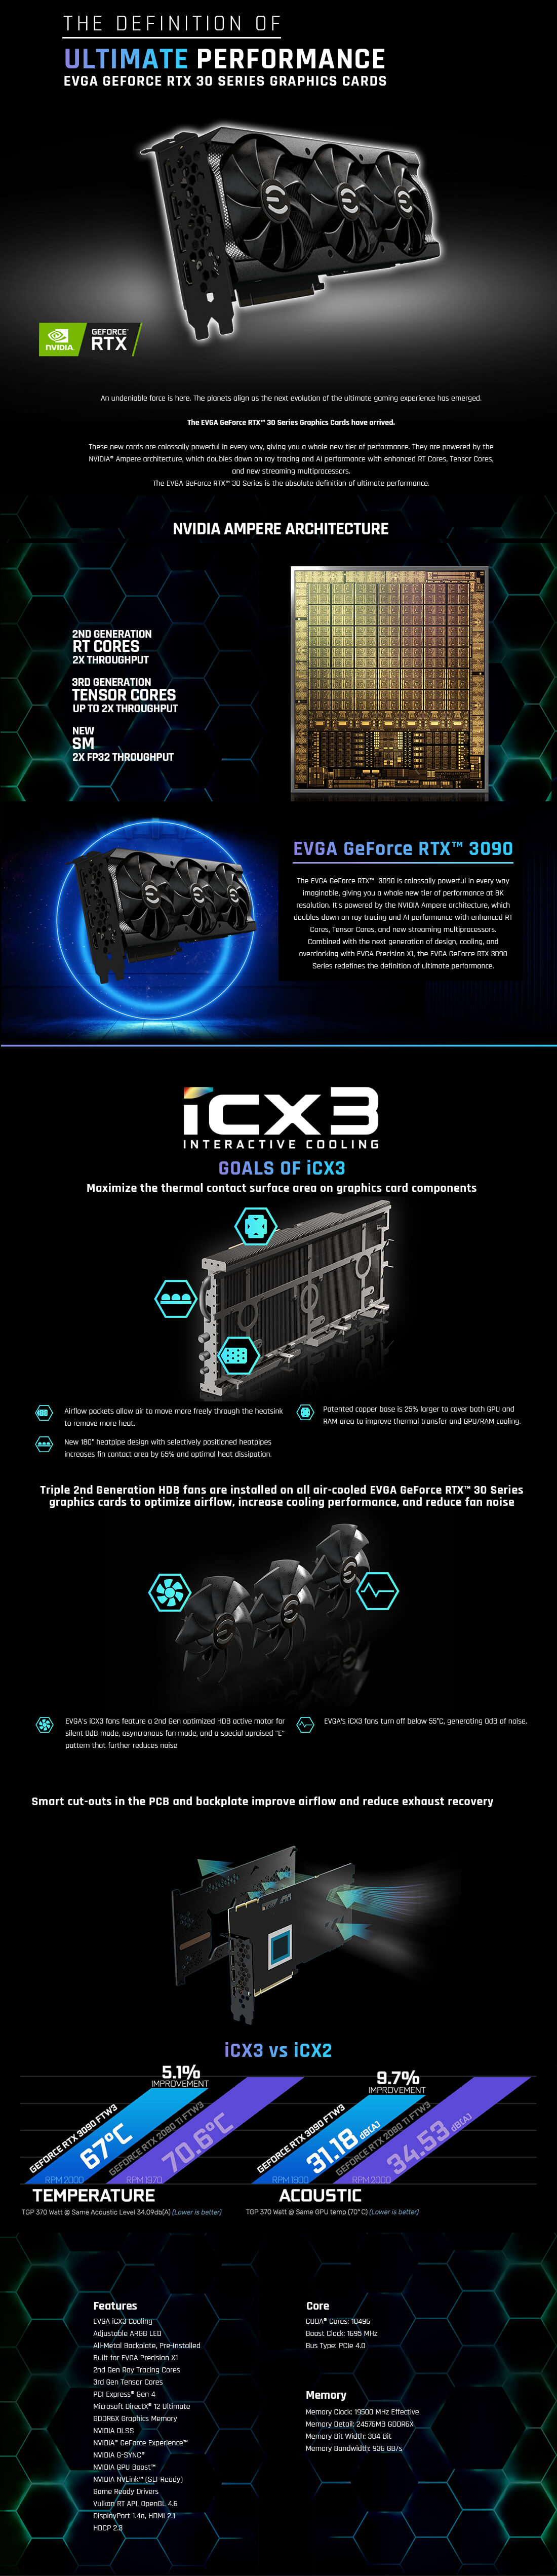 A large marketing image providing additional information about the product eVGA GeForce RTX 3090 XC3 24GB GDDR6X - Additional alt info not provided